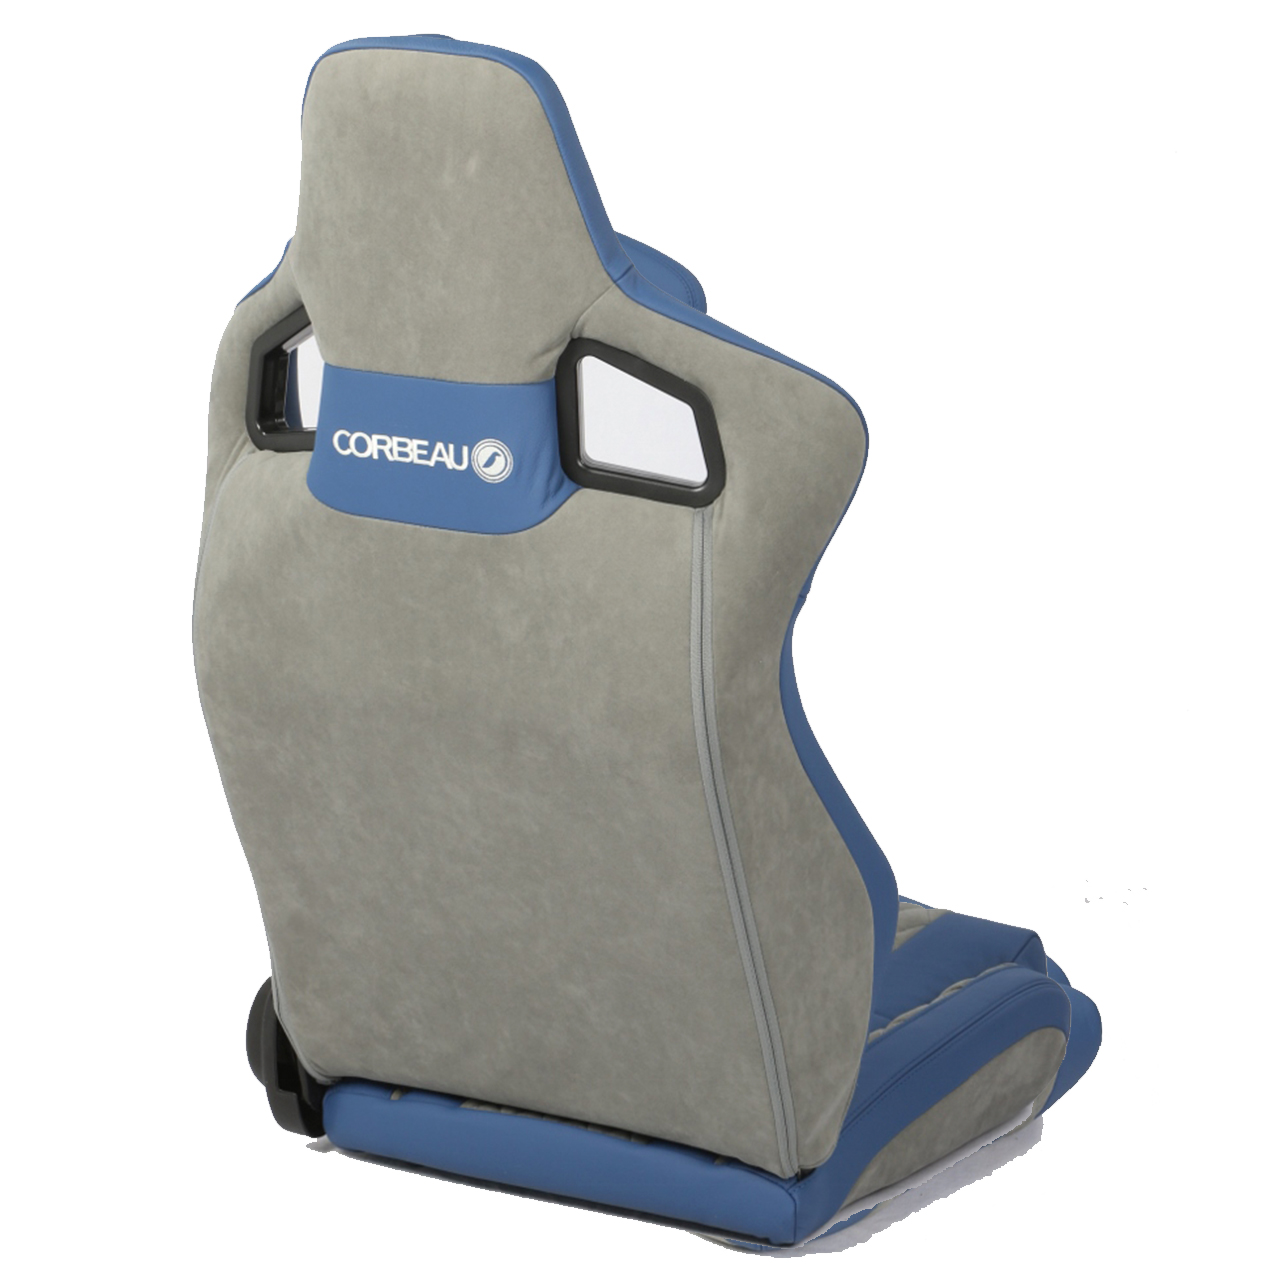 Corbeau Sportline RRS Reclining Race Seat in Blue and Grey (Custom Elite Upgrade)